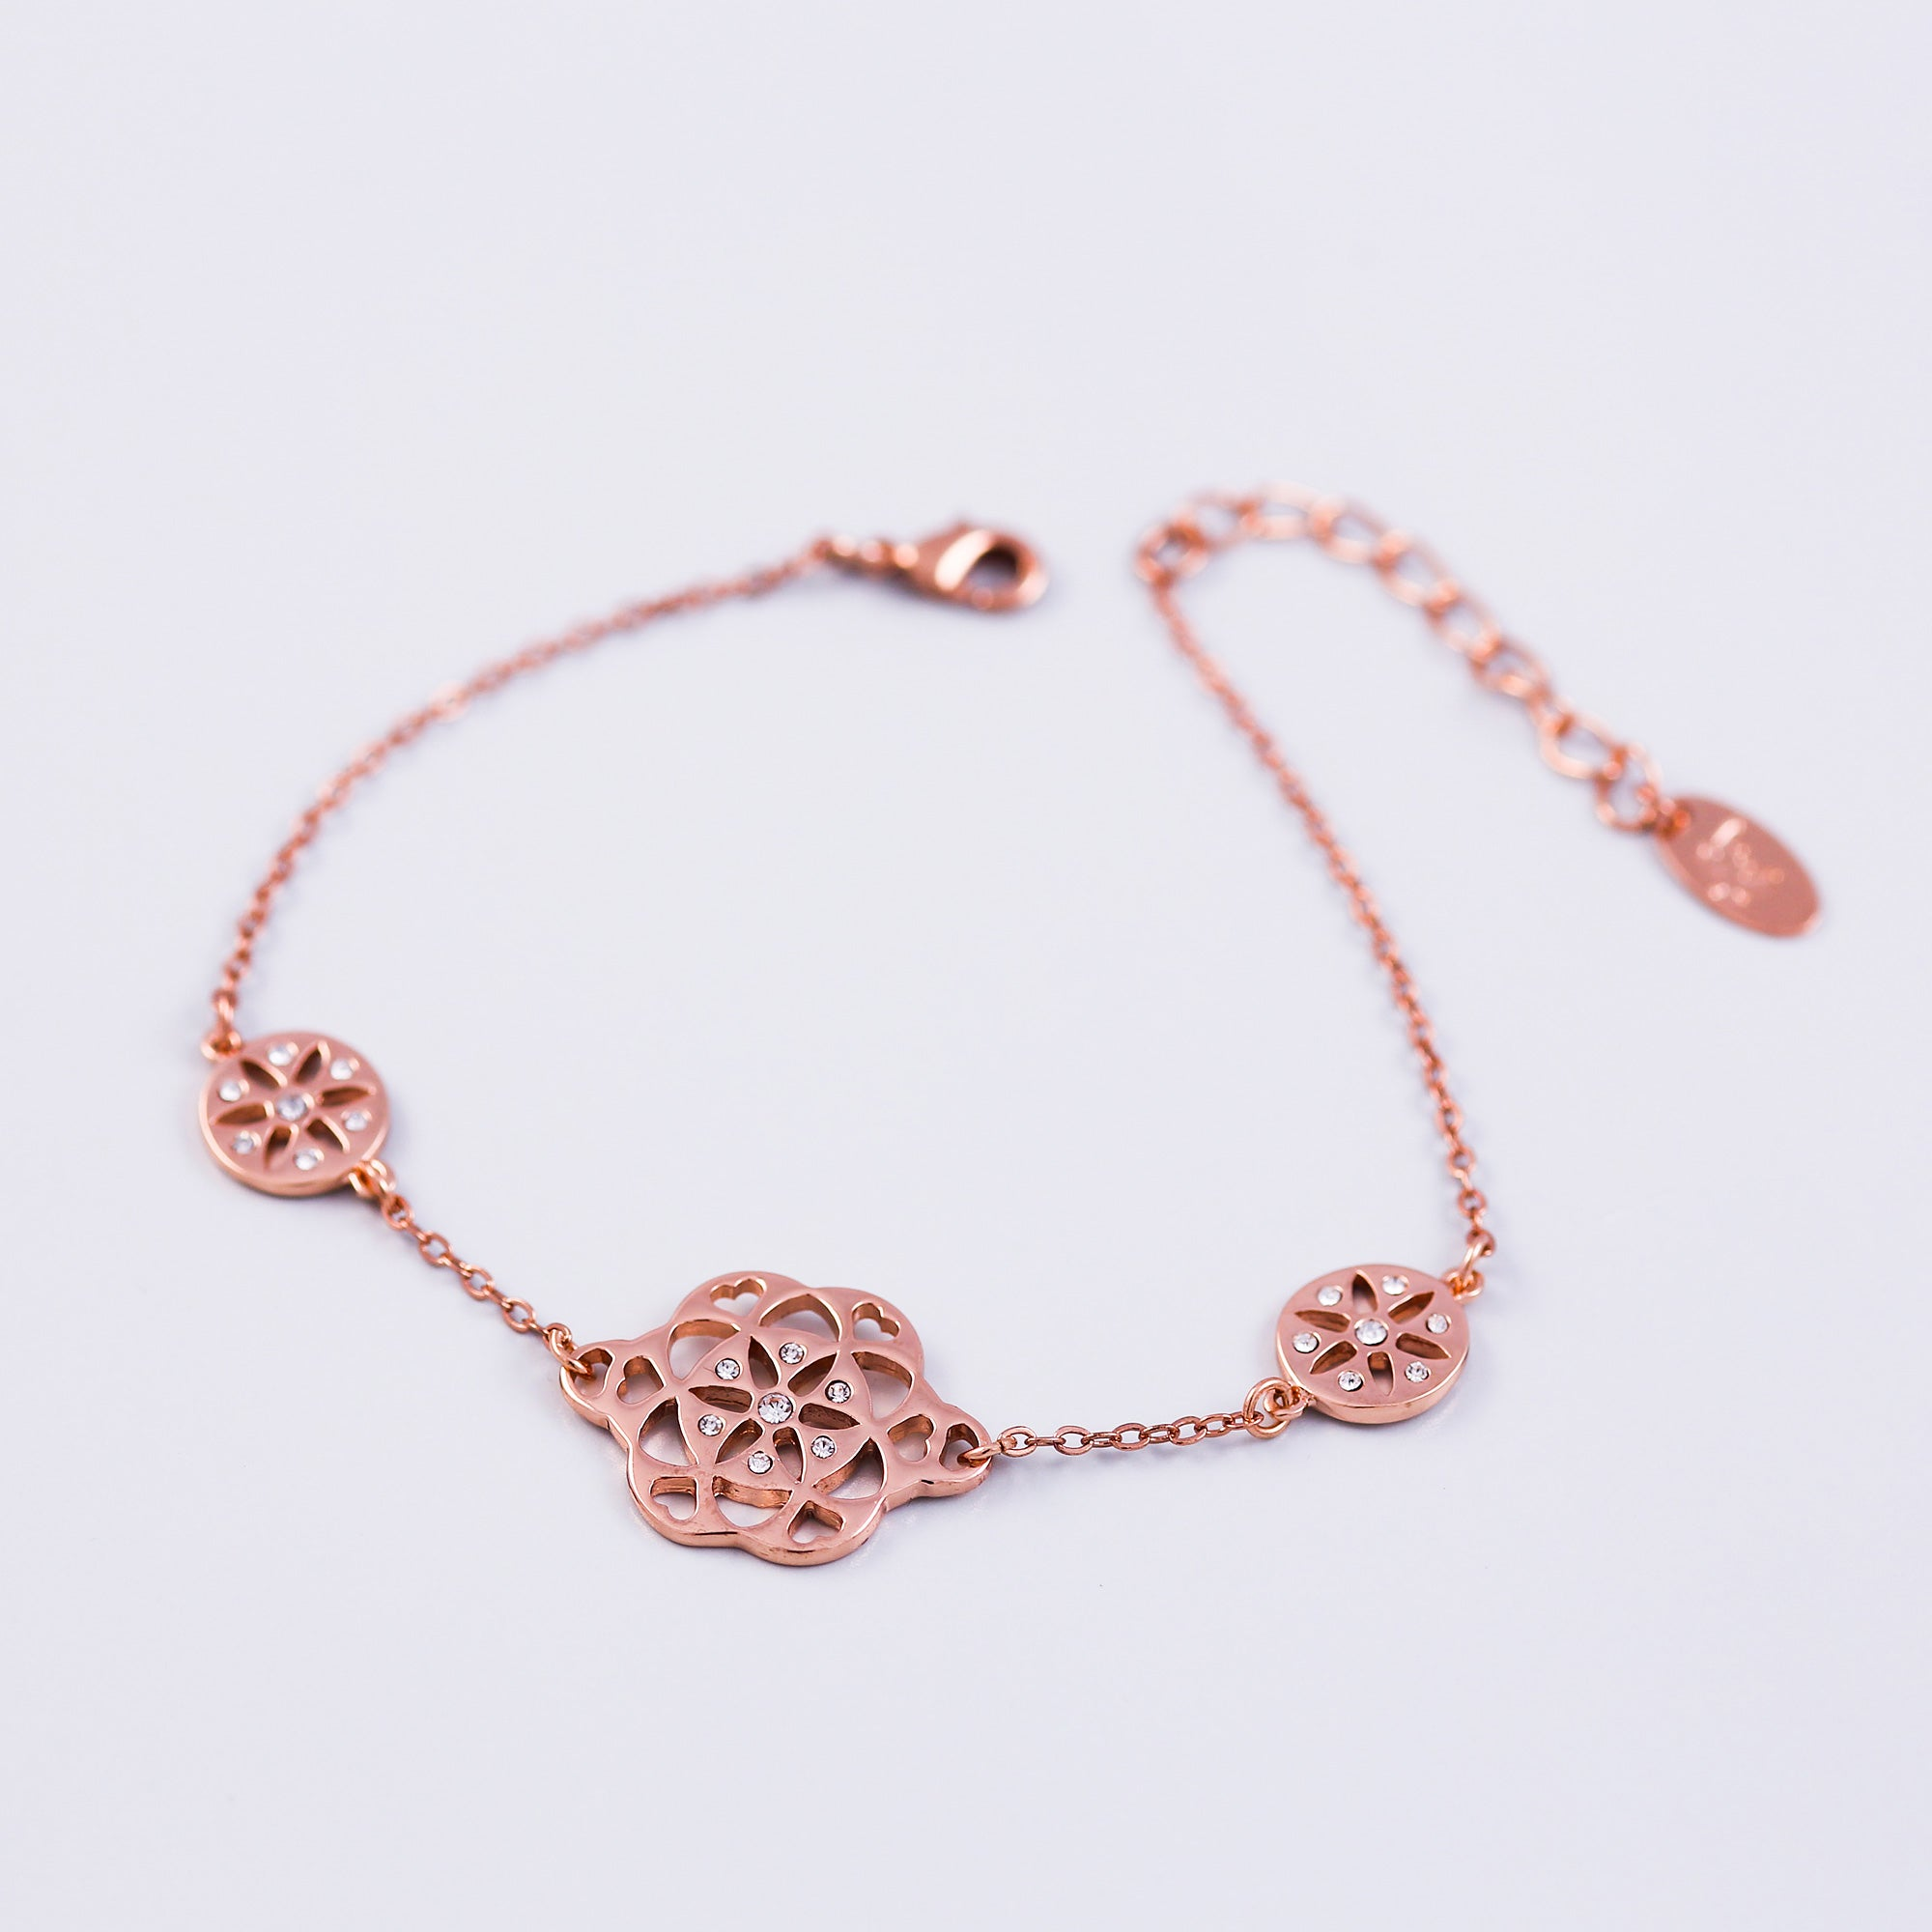 Rose Gold & Crystal Seed of Life Bracelet